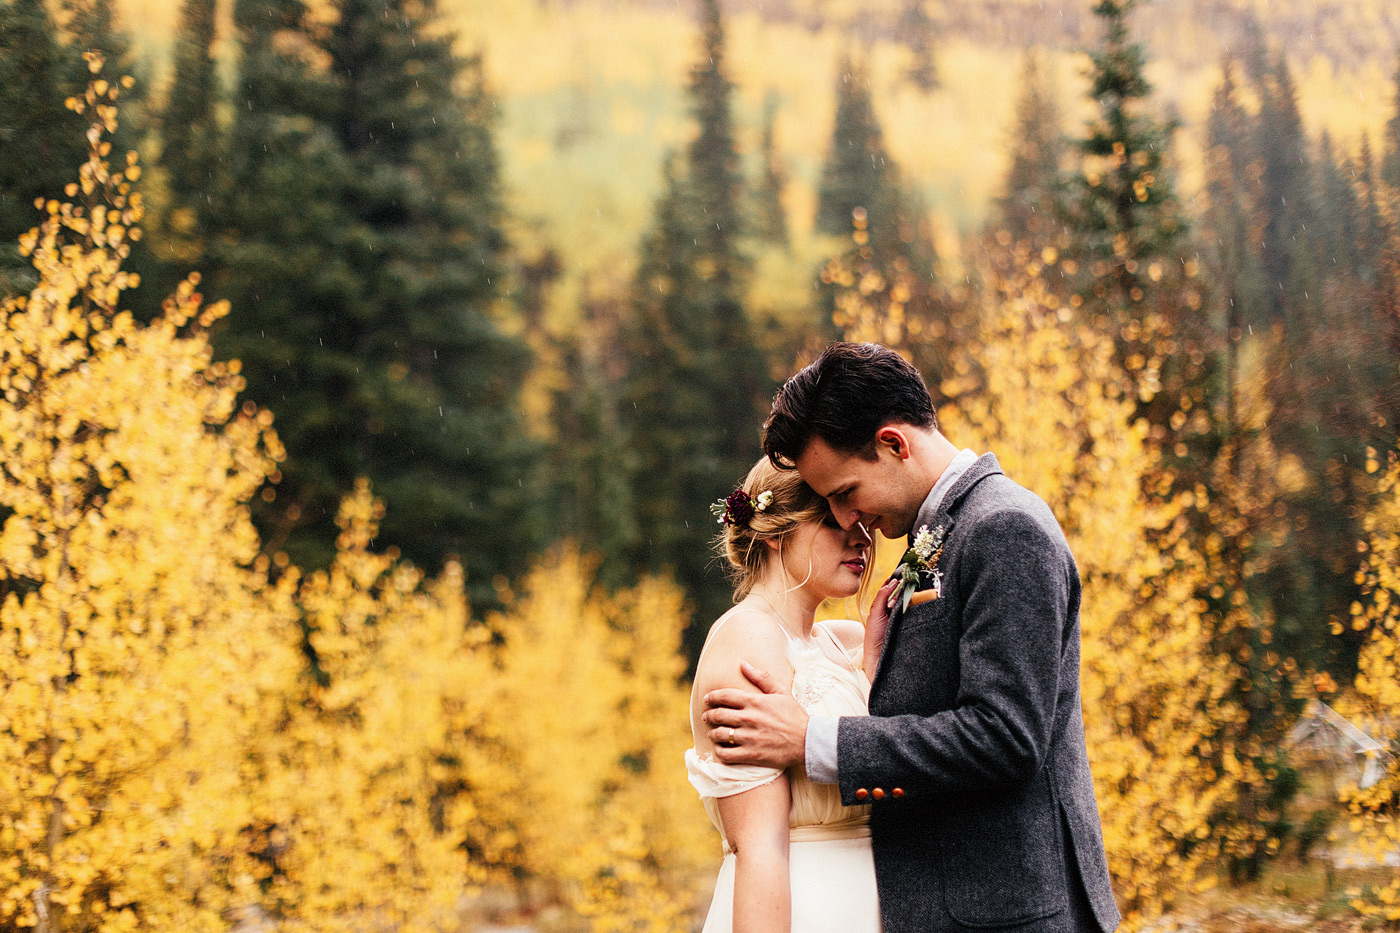 fall colors wedding aspens and evergreens bridal portrait intima